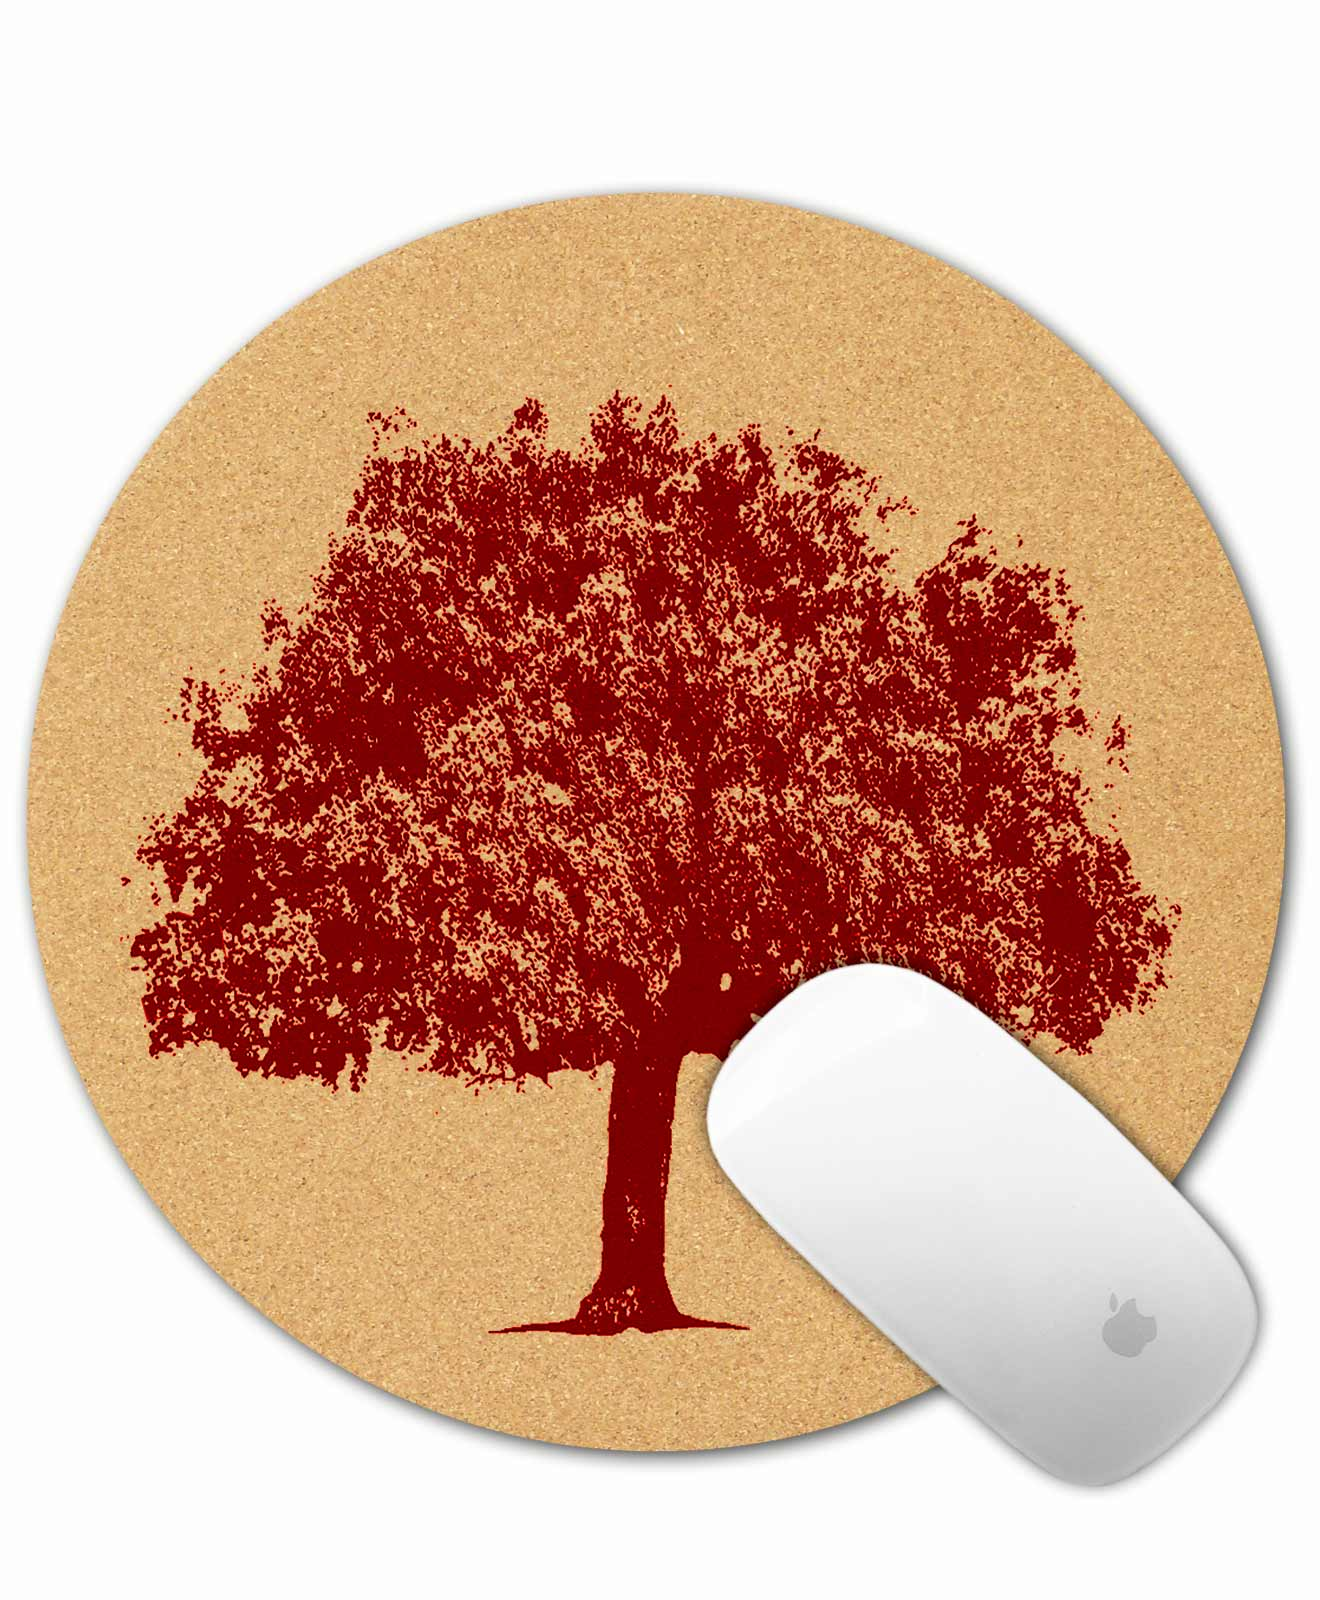 Mouse Pad Cork Oak